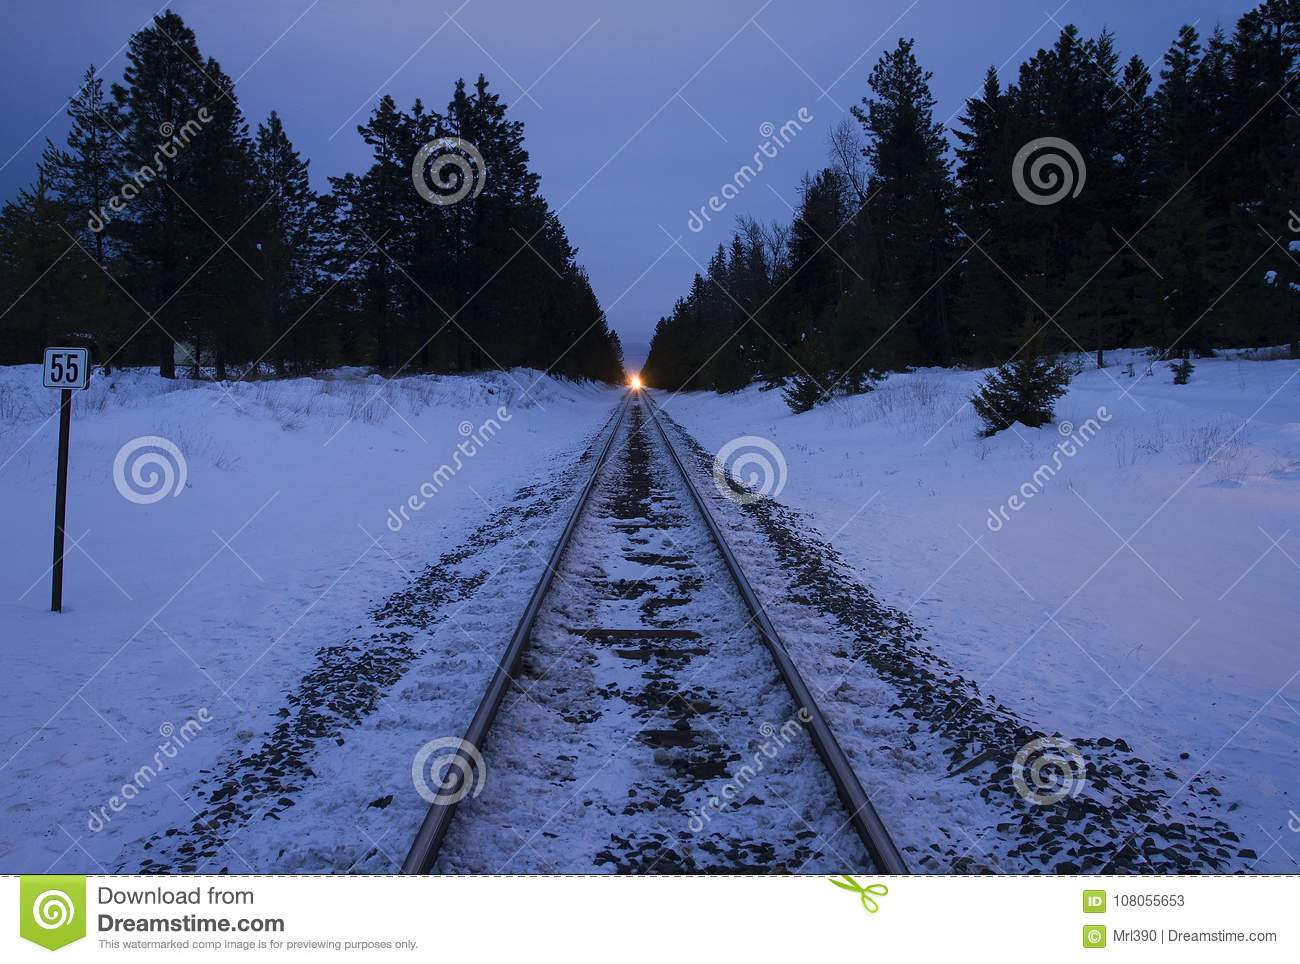 An Oncoming Train Through A Winter Landscape Stock Image Of Head Lights For Model Trains